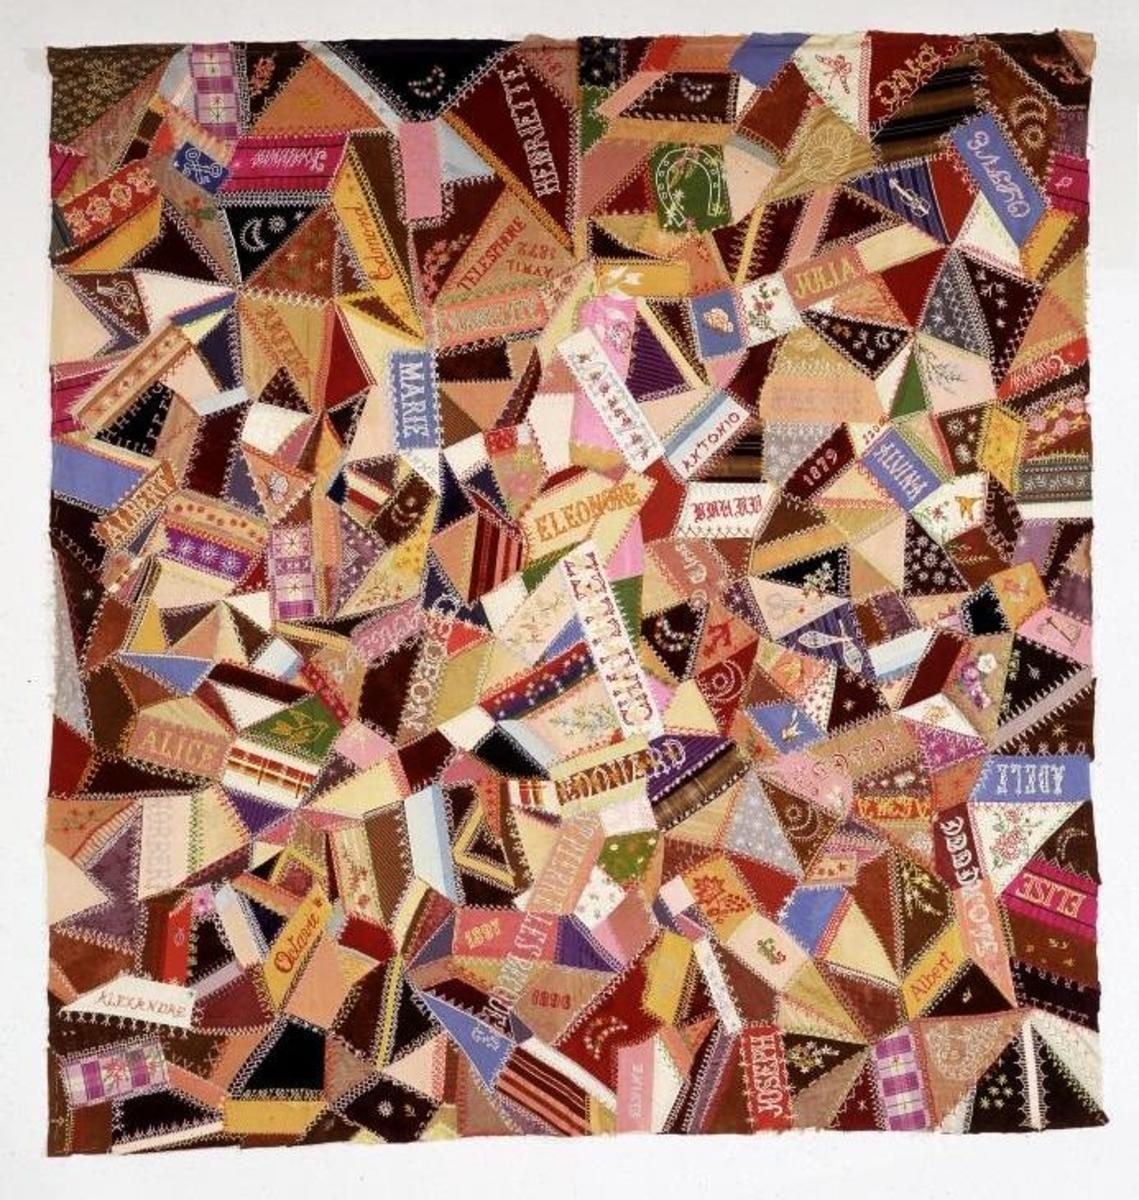 This 1897 crazy quilt uses embroidery and embellishments to share its message.